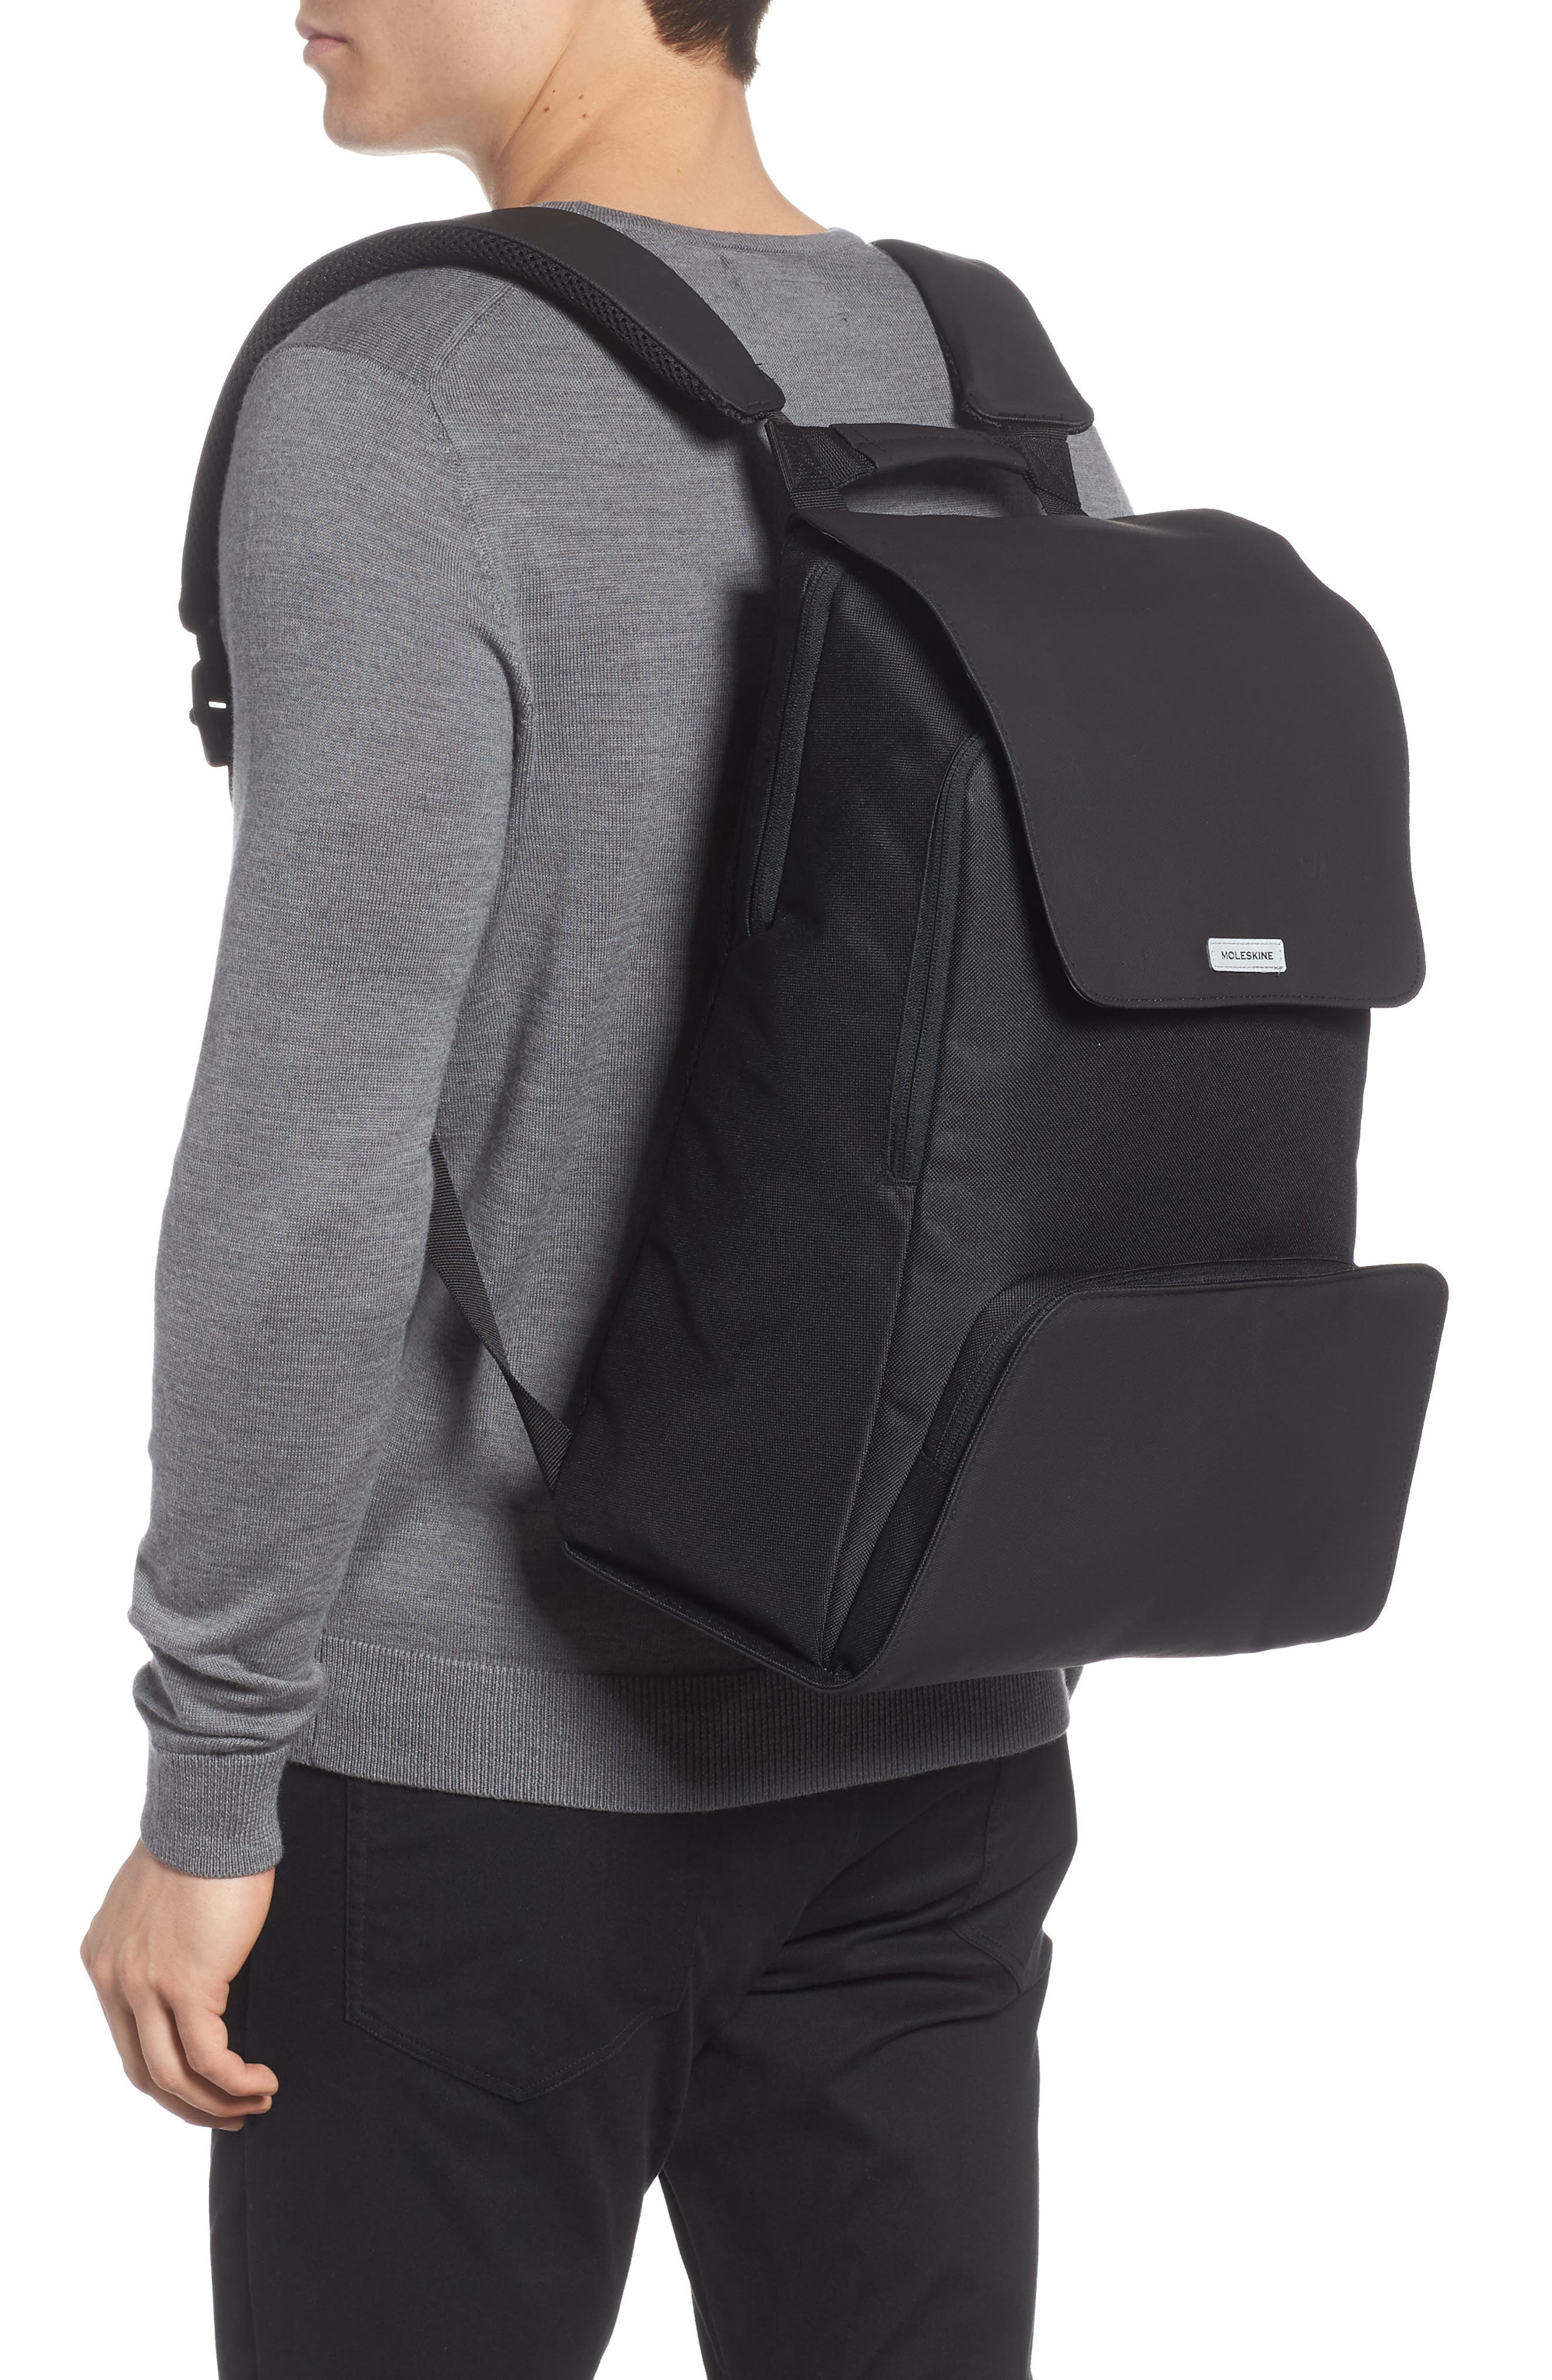 Nomad Water Resistant Backpack,                             Alternate thumbnail 2, color,                             Black